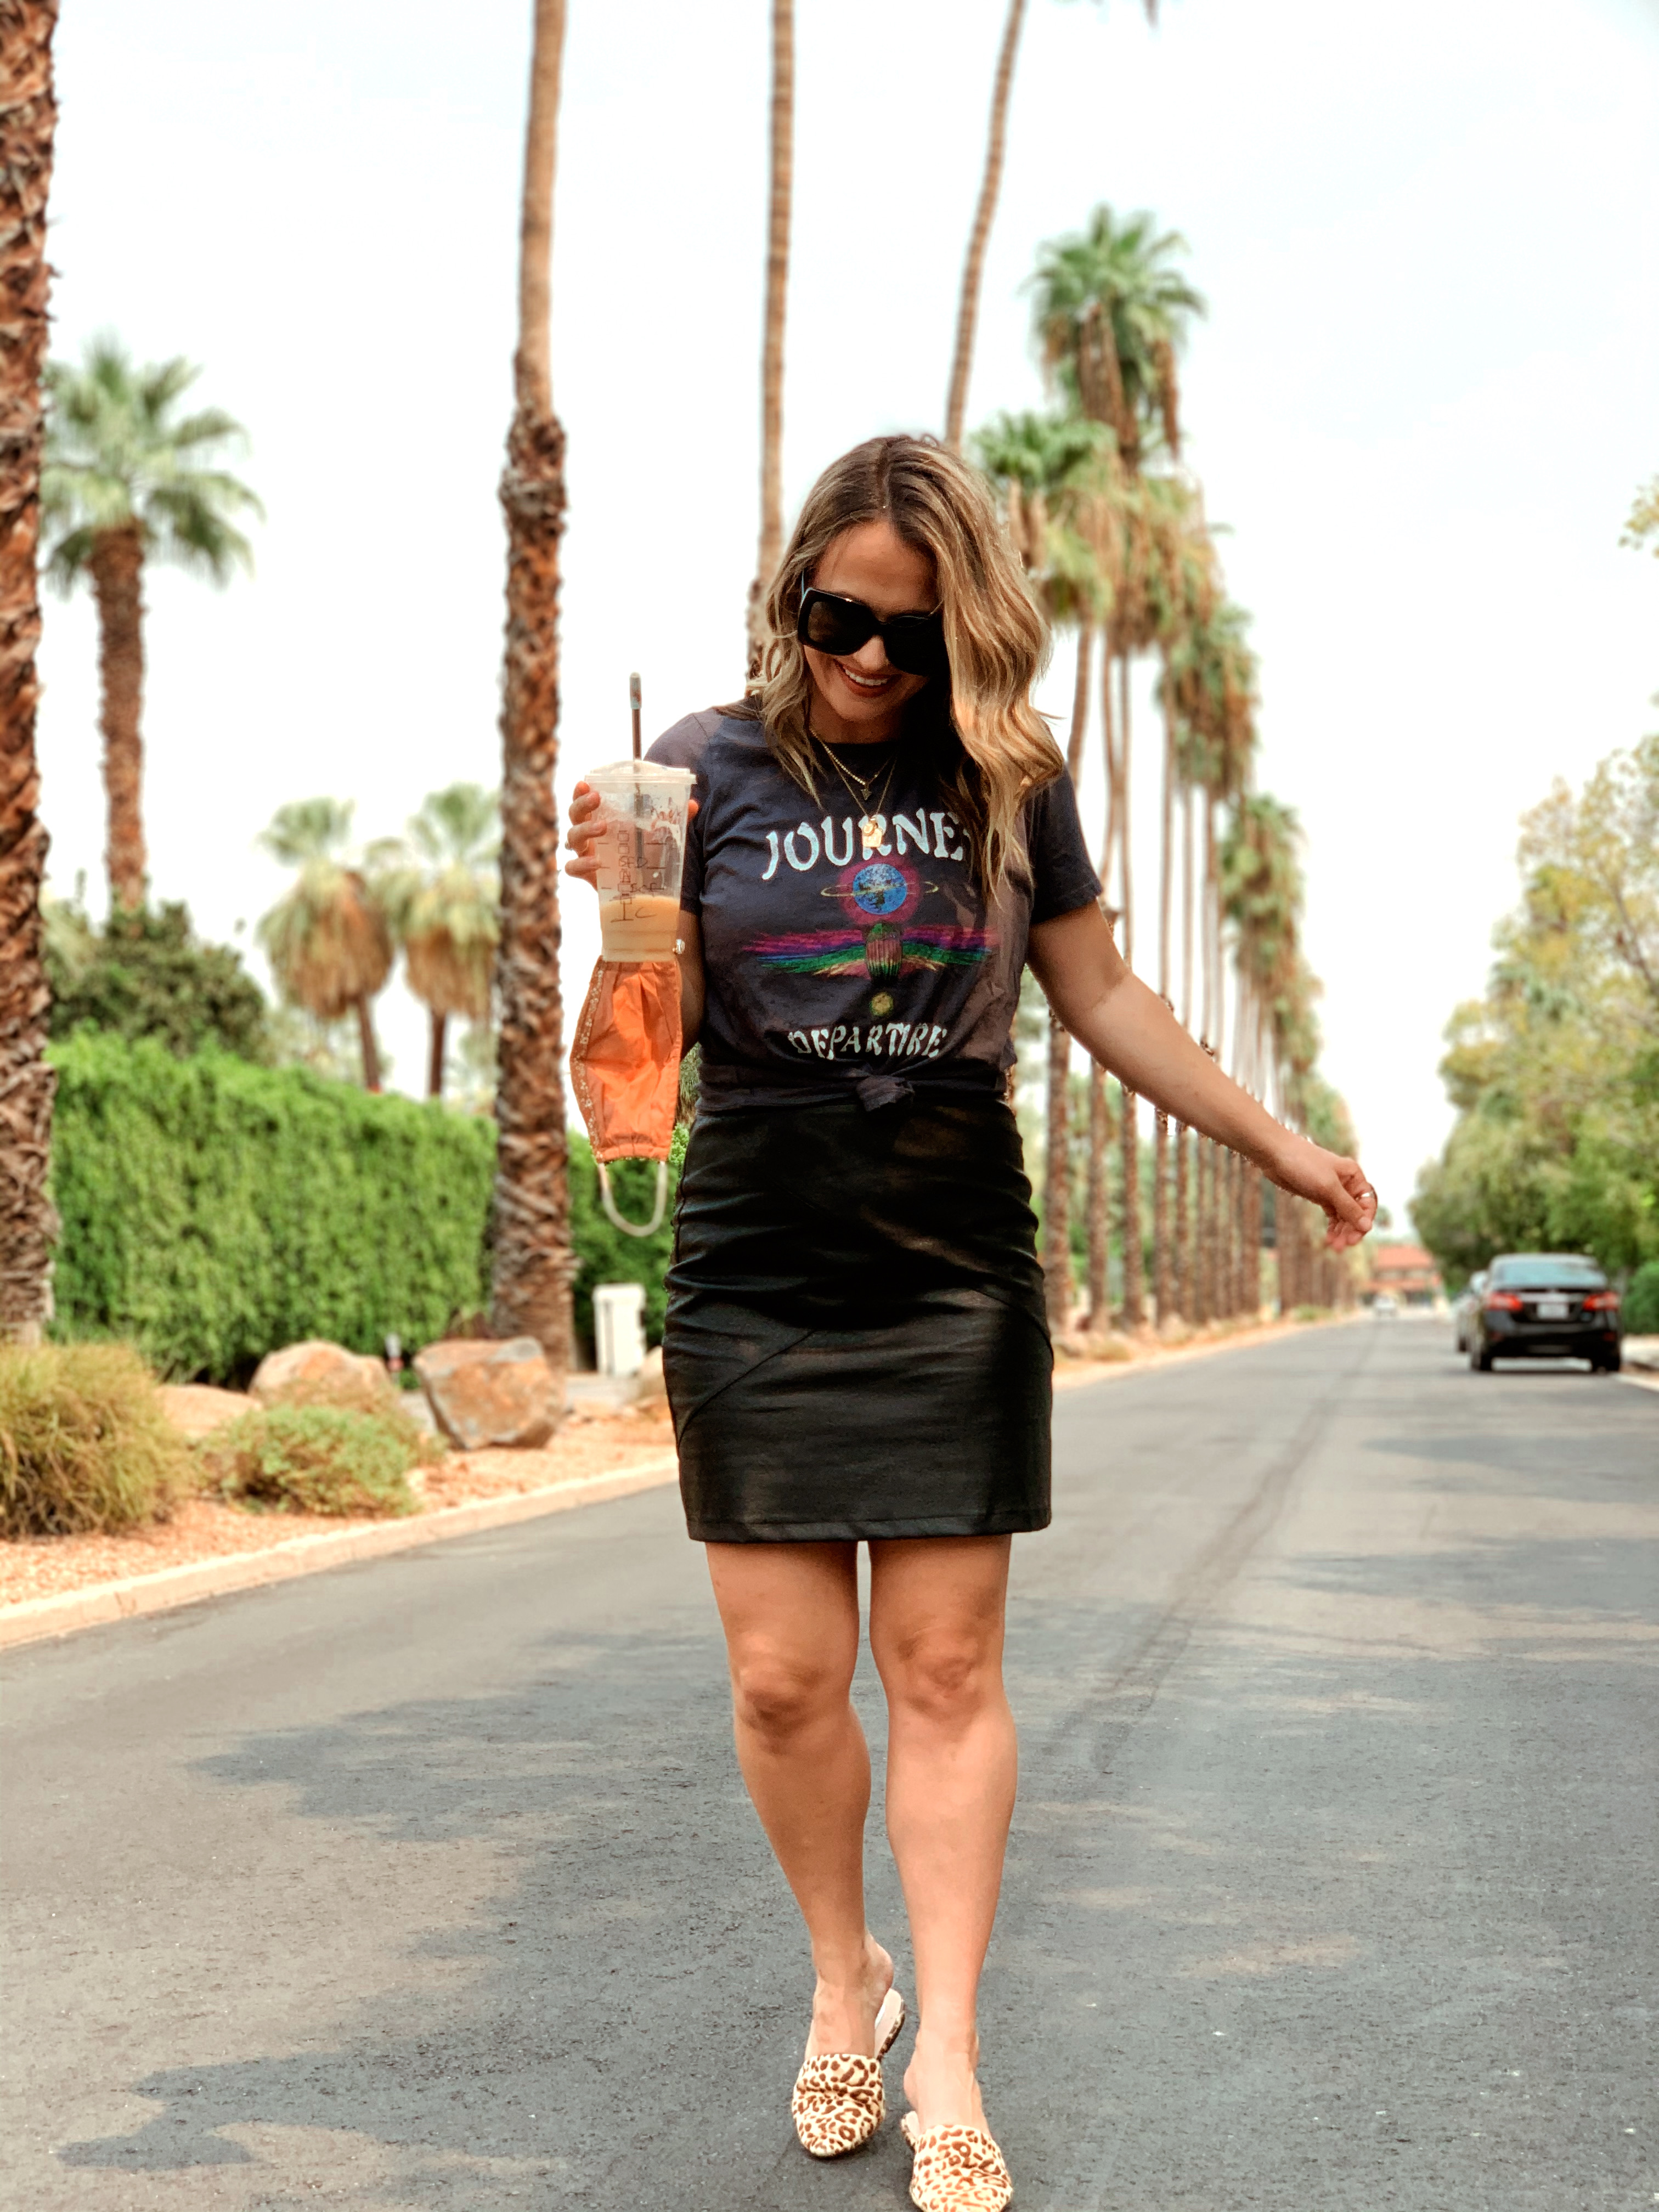 graphic tee outfits womens graphic tee outfit ideas men how to style oversized graphic tees graphic tee outfits pinterest graphic tee summer outfits graphic tee outfits tumblr graphic tee outfits fall vintage graphic tees fall fashion fall outfits amazon fashion amazon finds